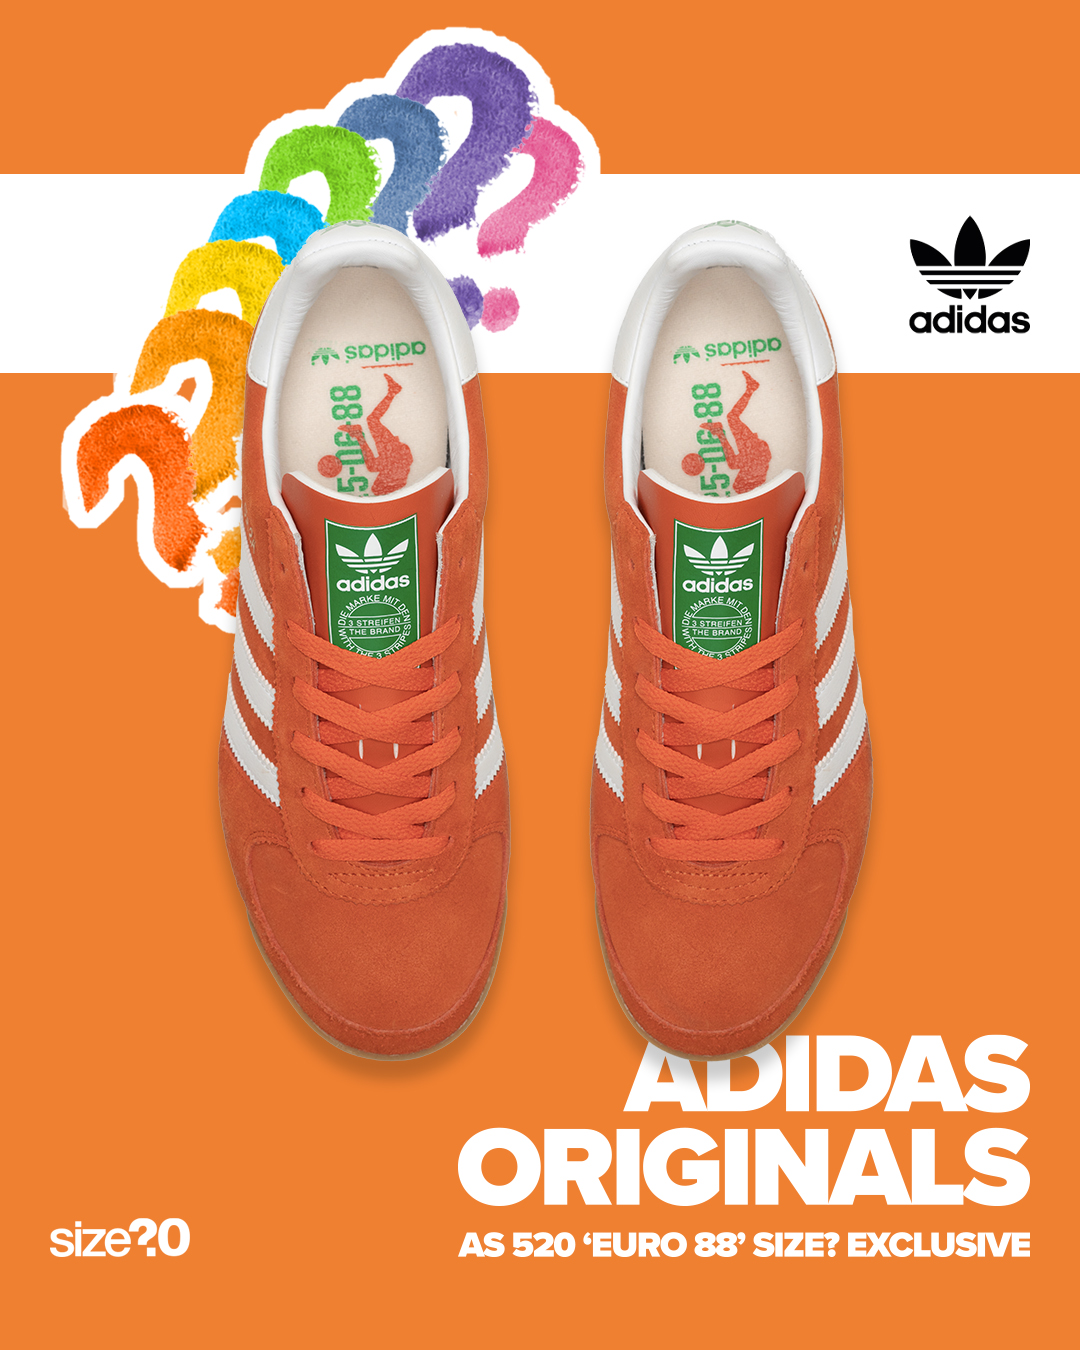 This volley-inspired adidas Originals AS 520 is the last instalment to our exclusive Euros Pack